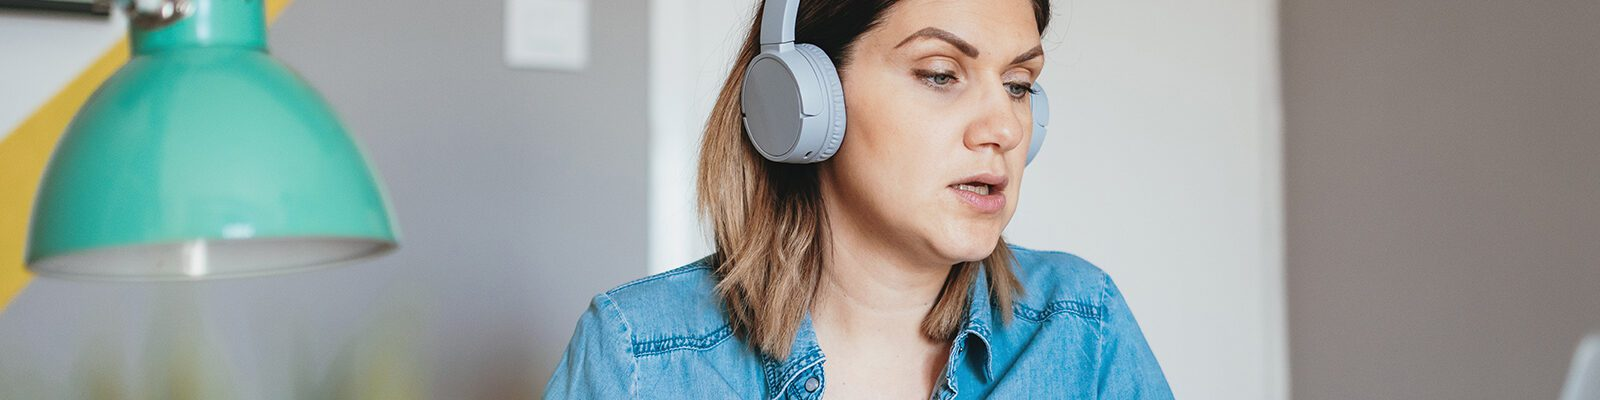 A woman with headphones talks during a virtual meeting